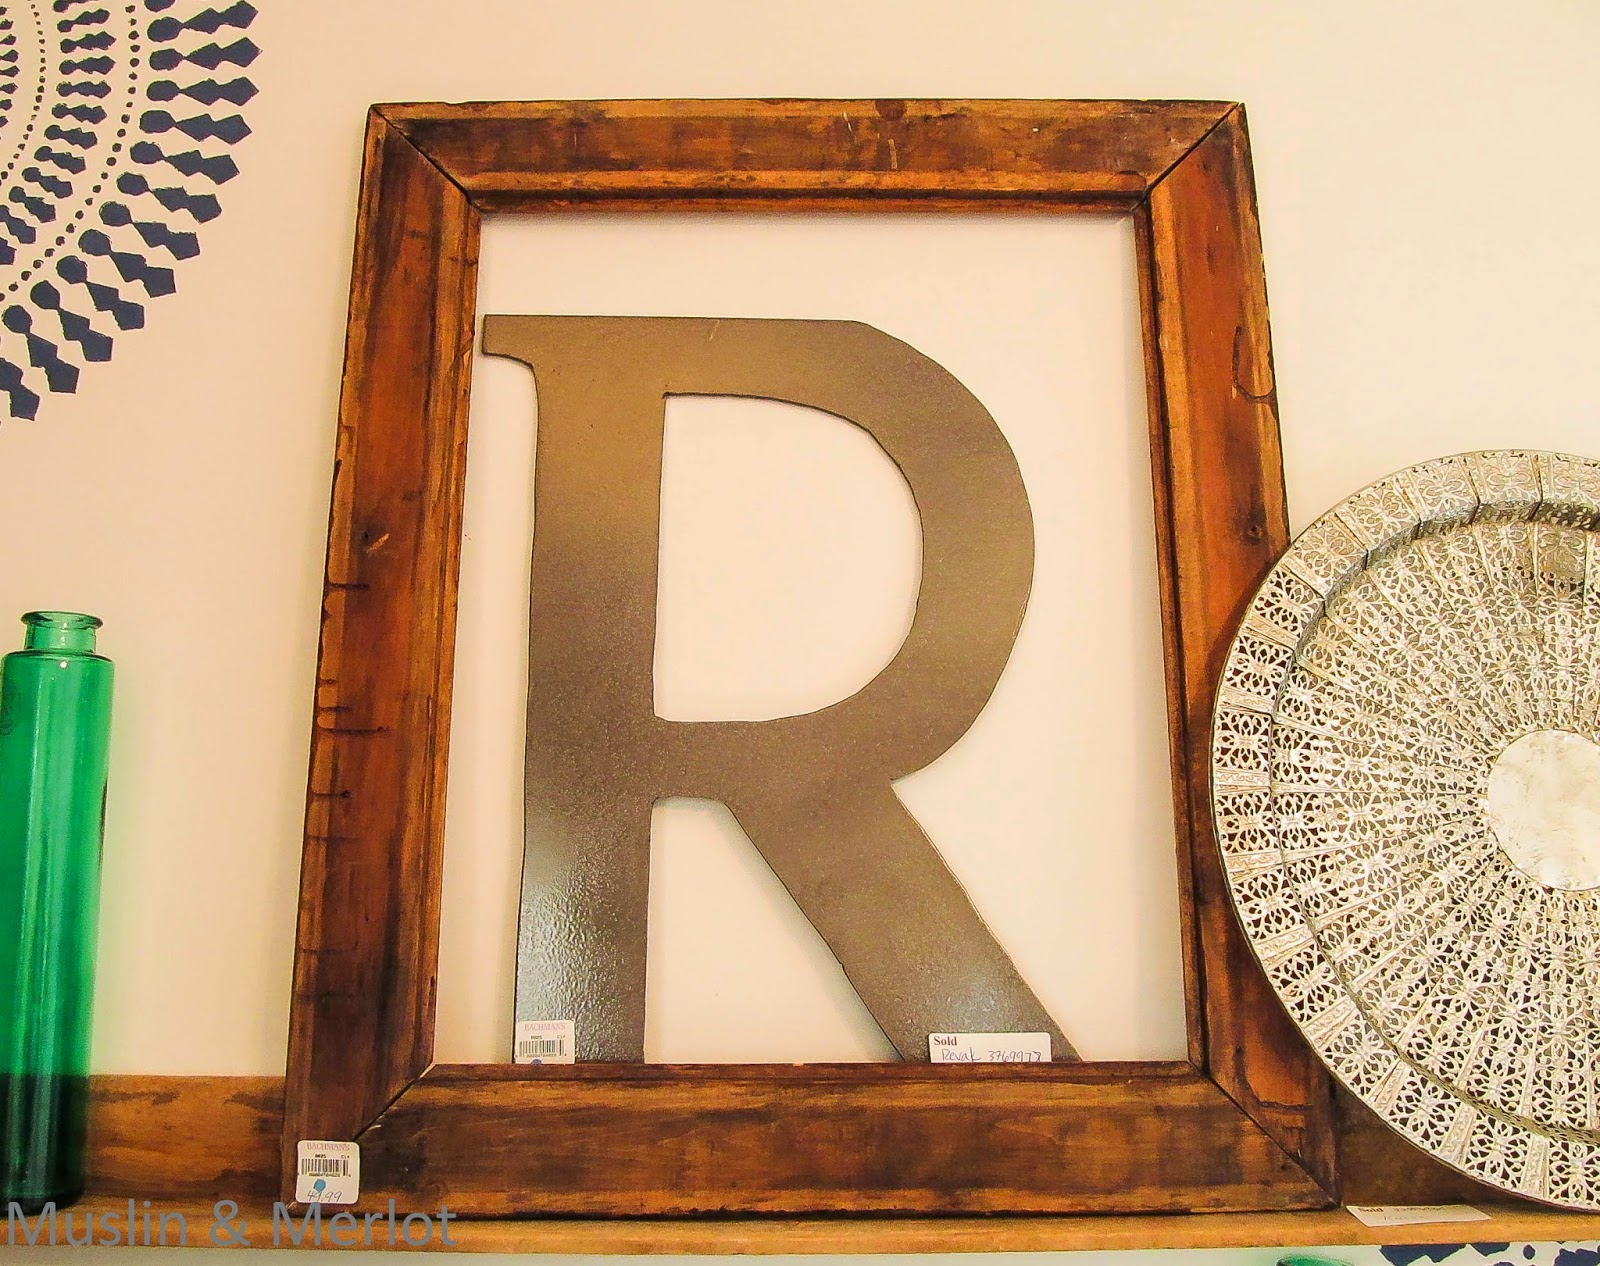 Metal letter and wood frame decor.